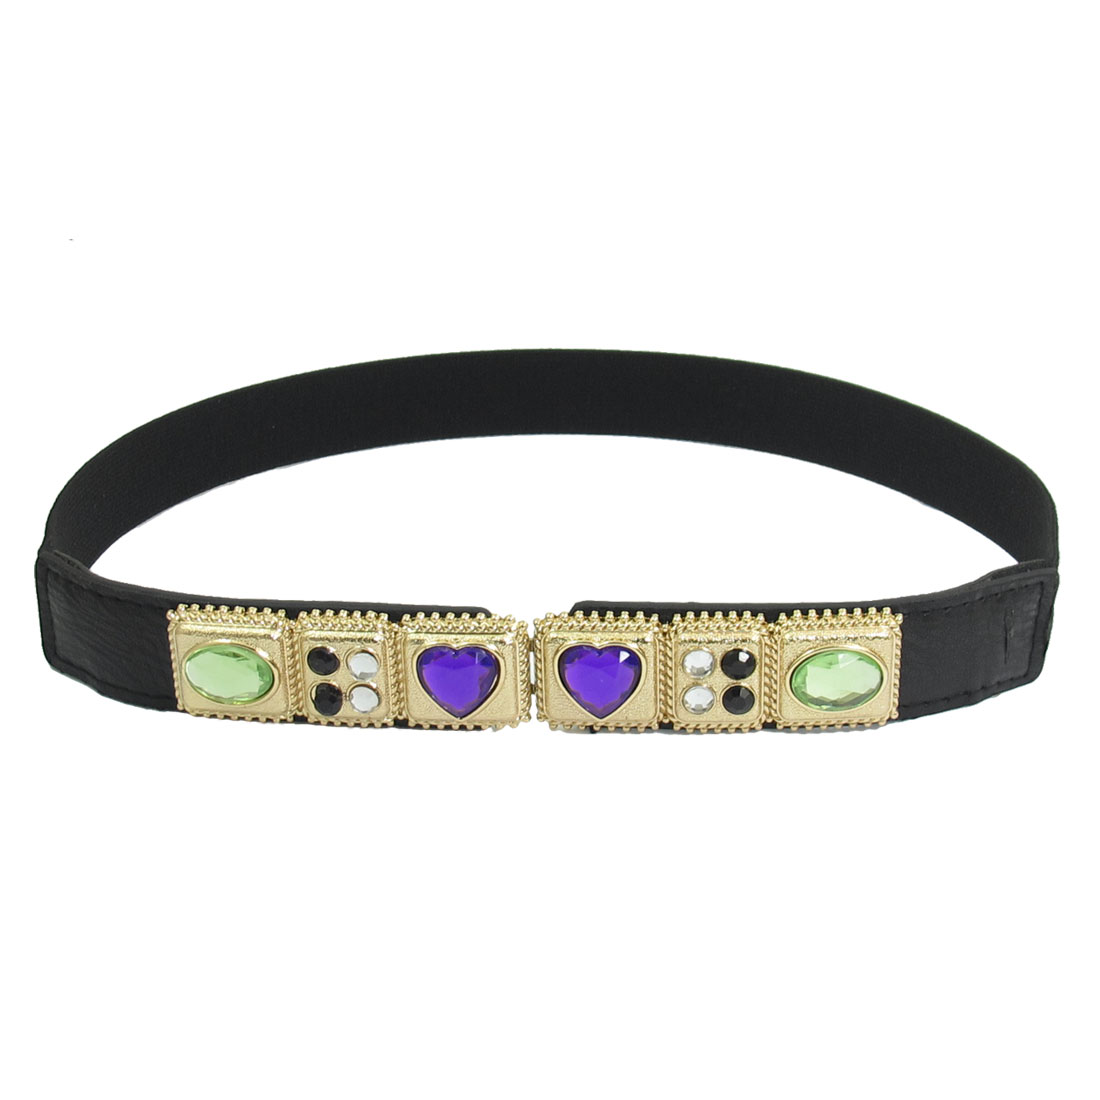 Women Rhinestone Inlaid Metal Interlocking Buckle Stretchy Waist Blet Black